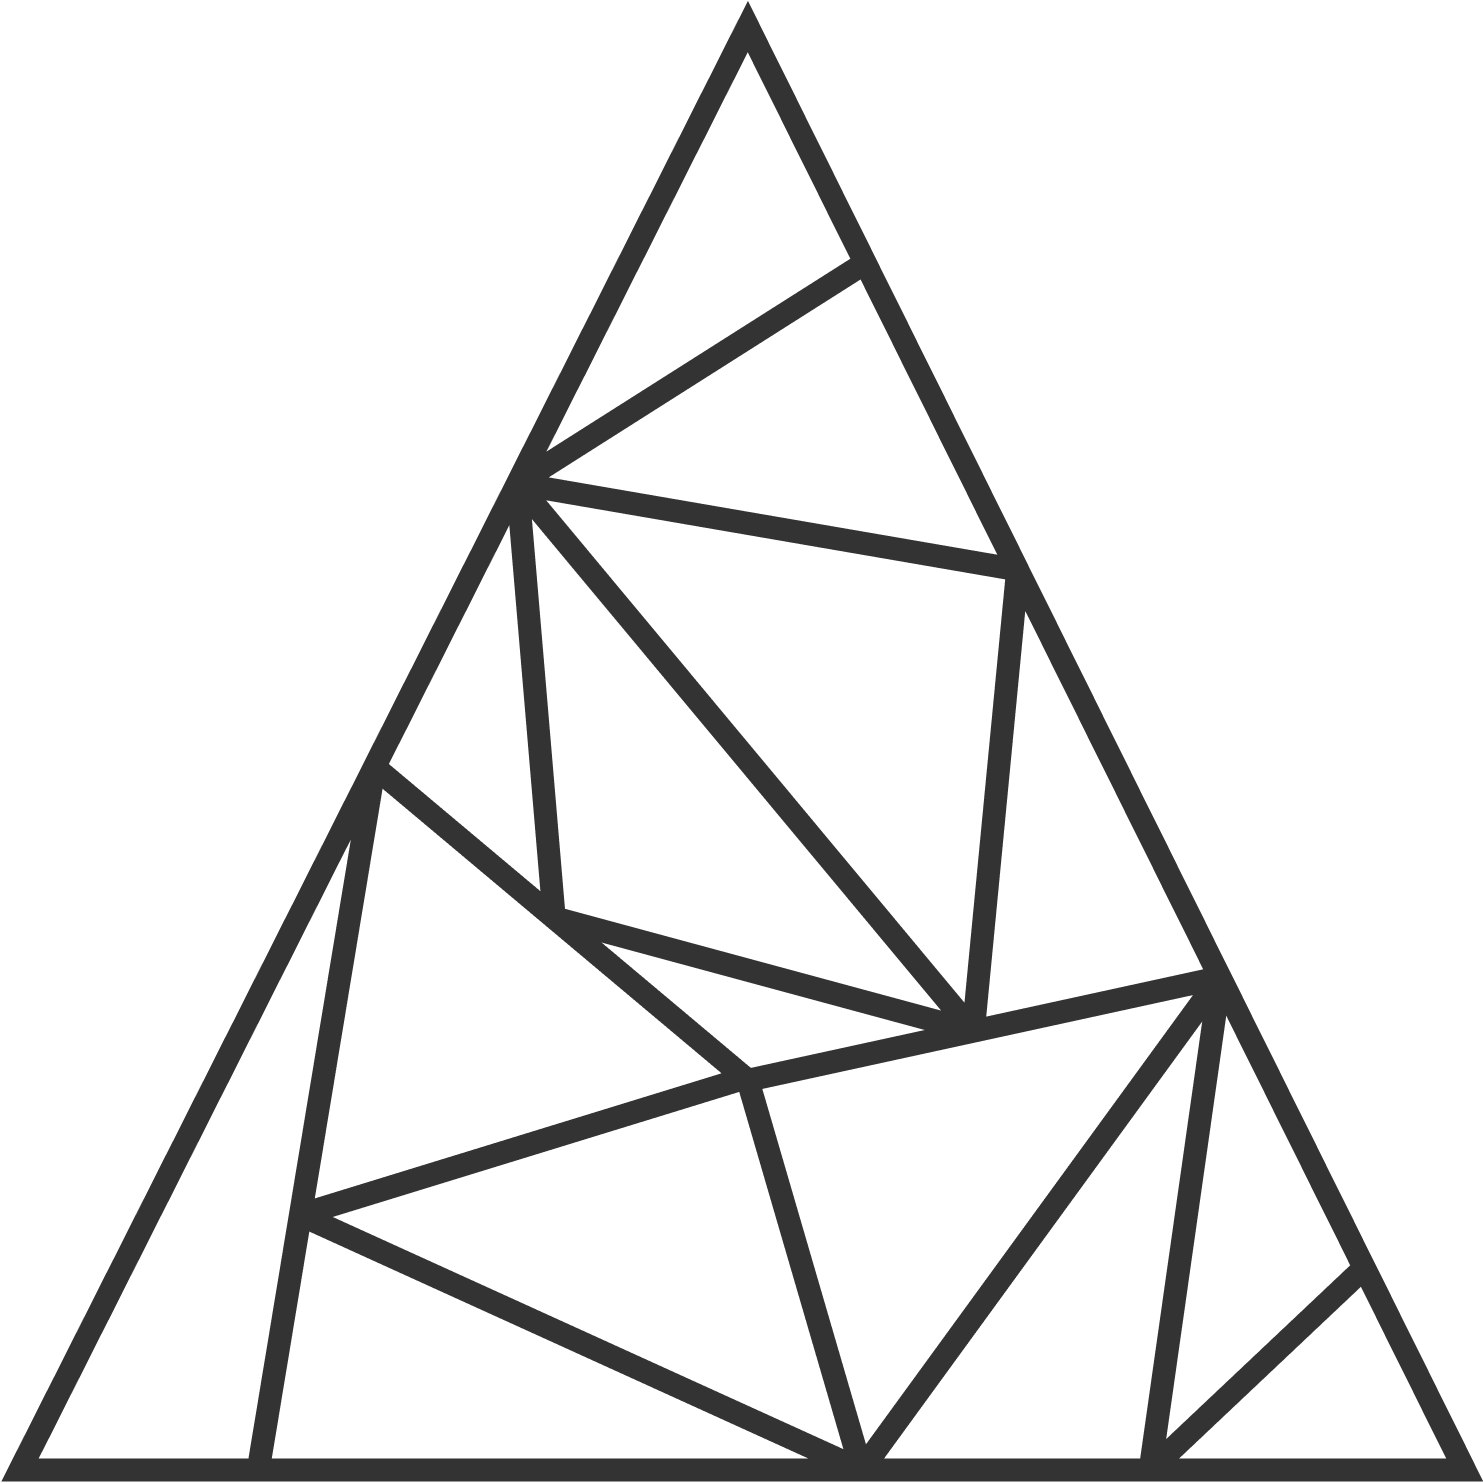 A triangulation of a 2-simplex